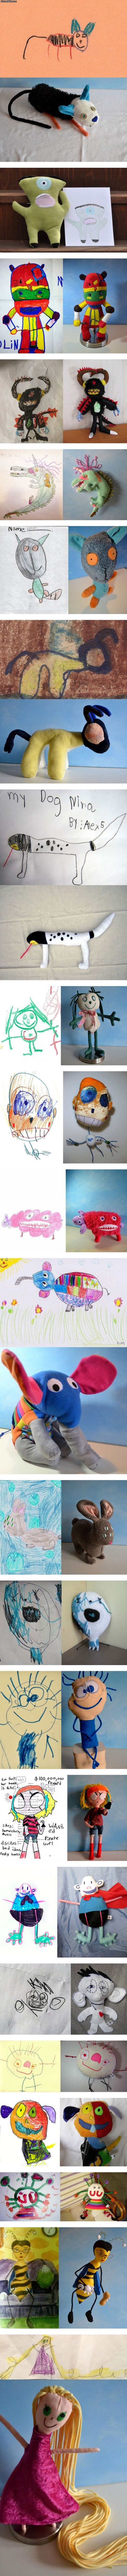 Childrens drawings were made into toys: Kids Drawing, Child S Drawing, Kid S Drawing, Children Drawing, Stuffed Toy, Stuffed Animal, Children S Drawing